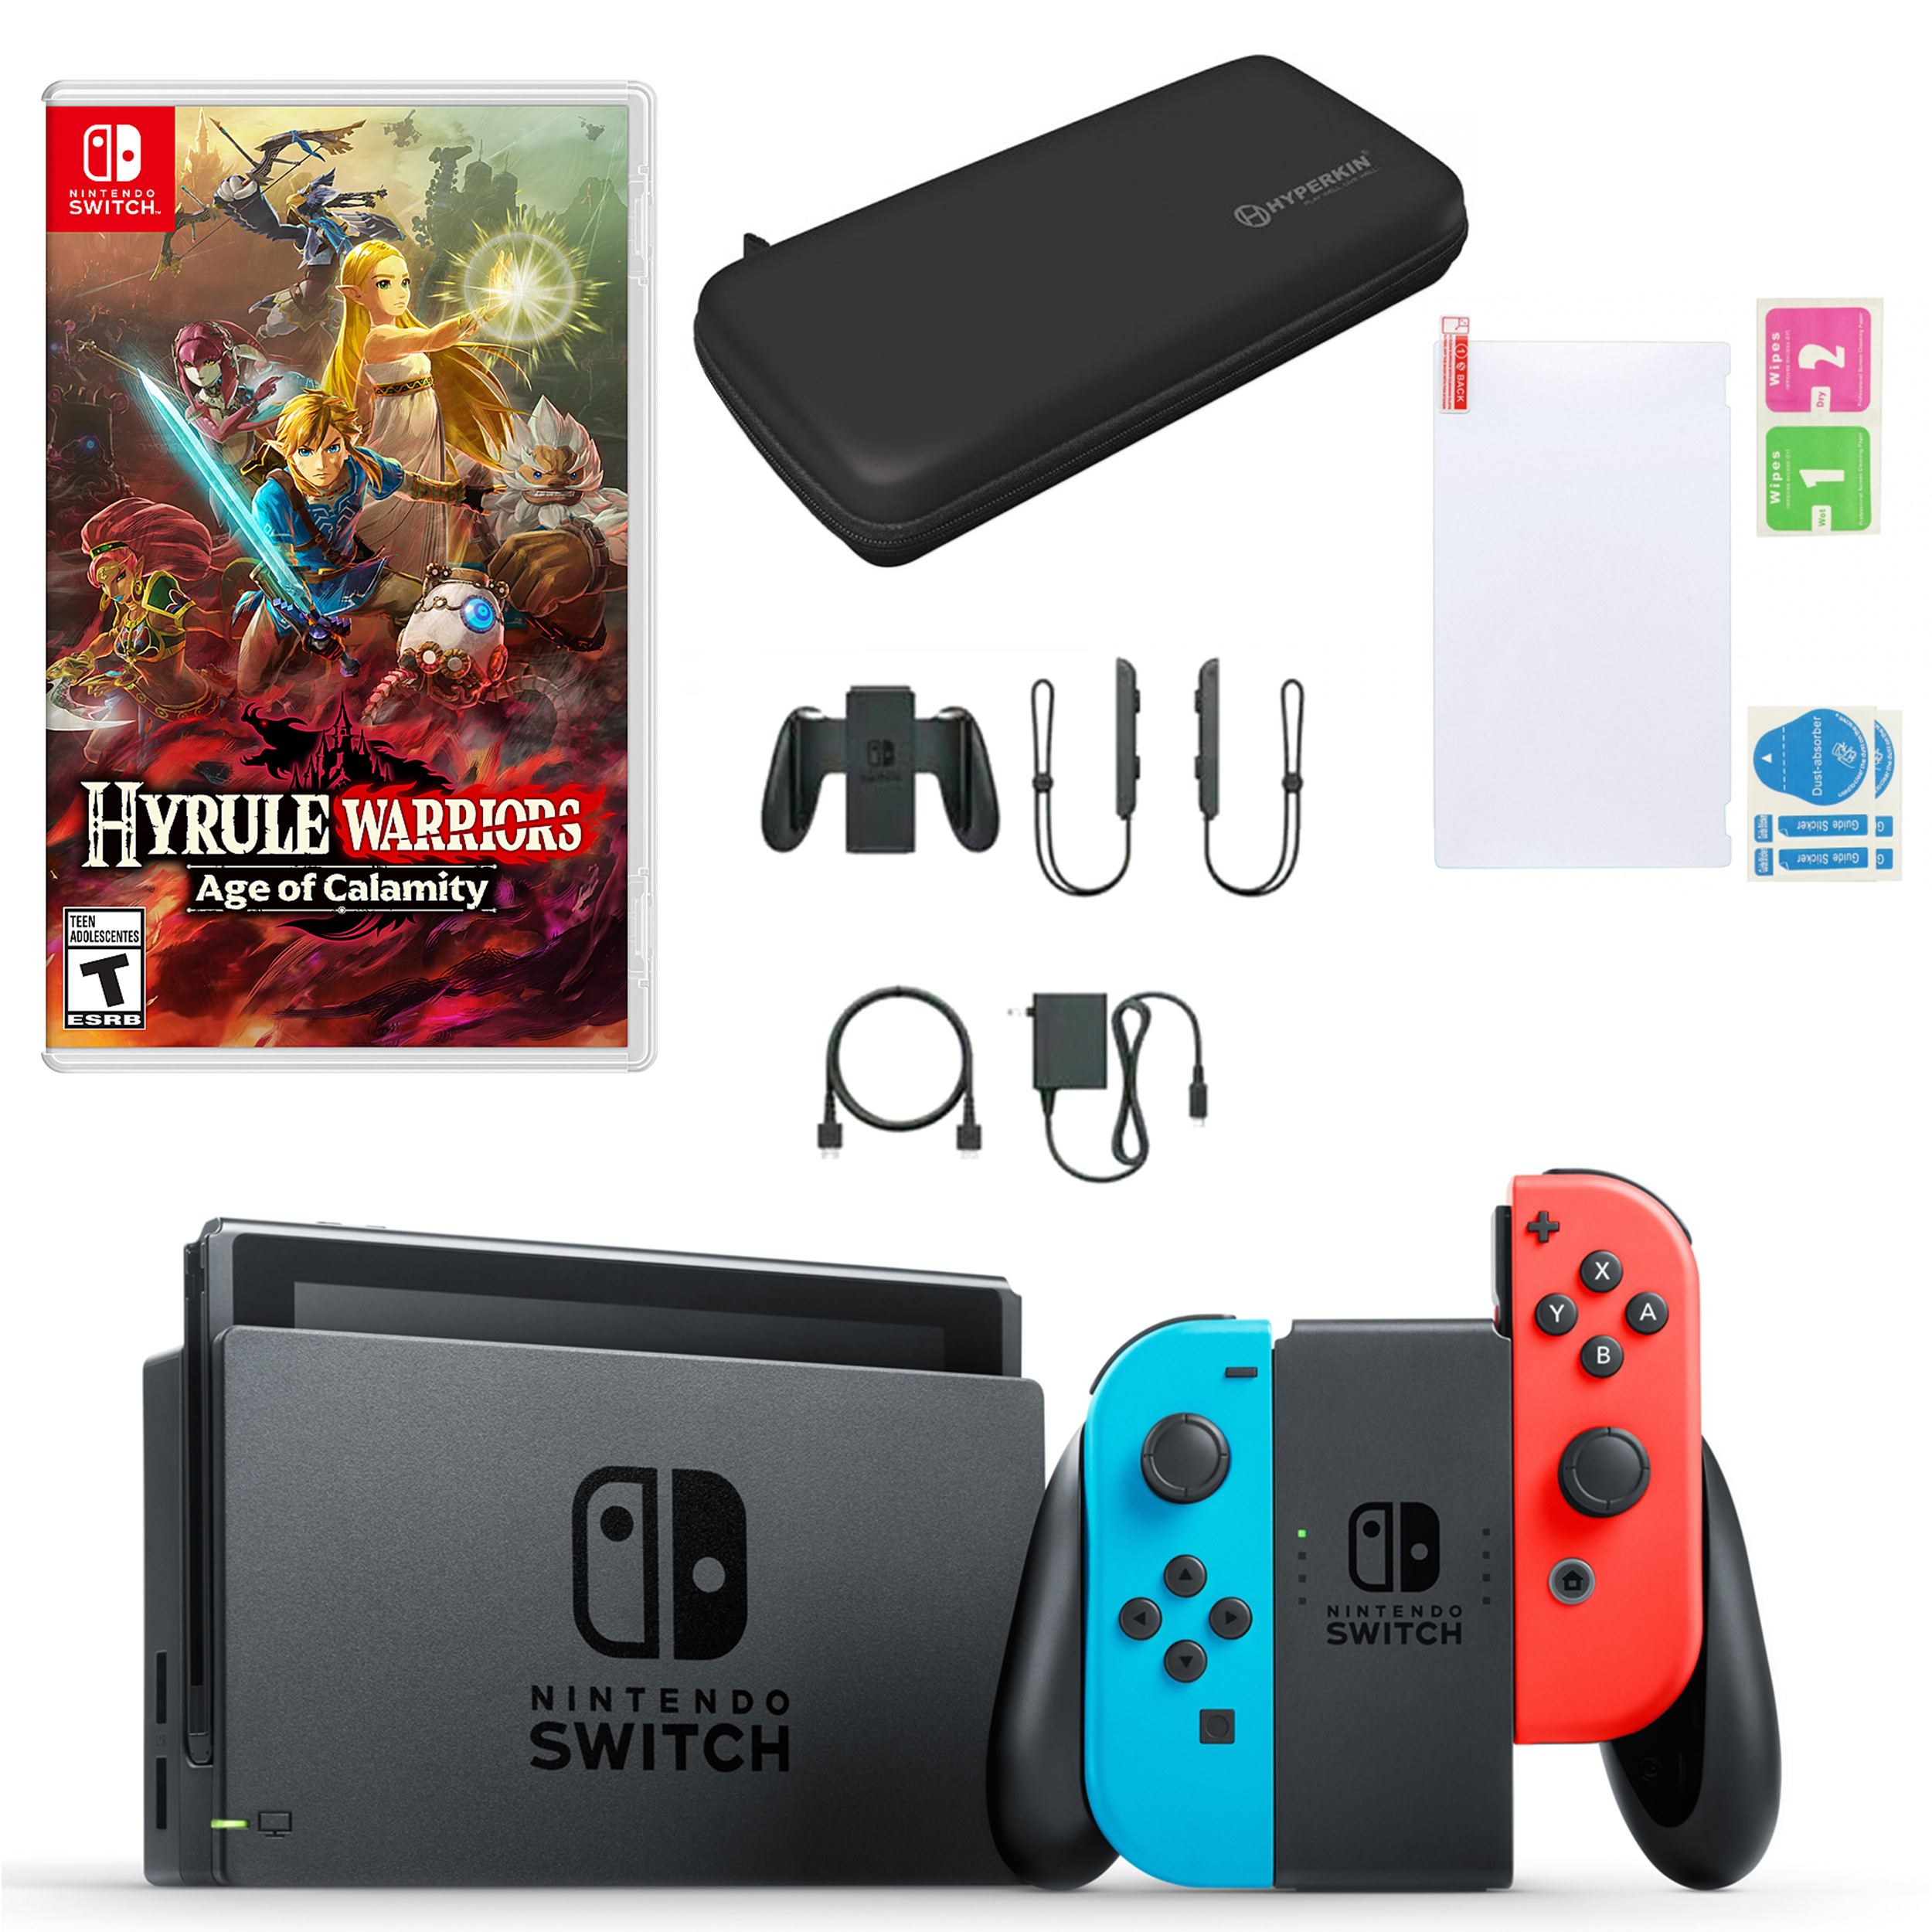 Nintendo Switch In Neon With Hyrule Warriors Age Of Calamity And Accessories Walmart Com Walmart Com